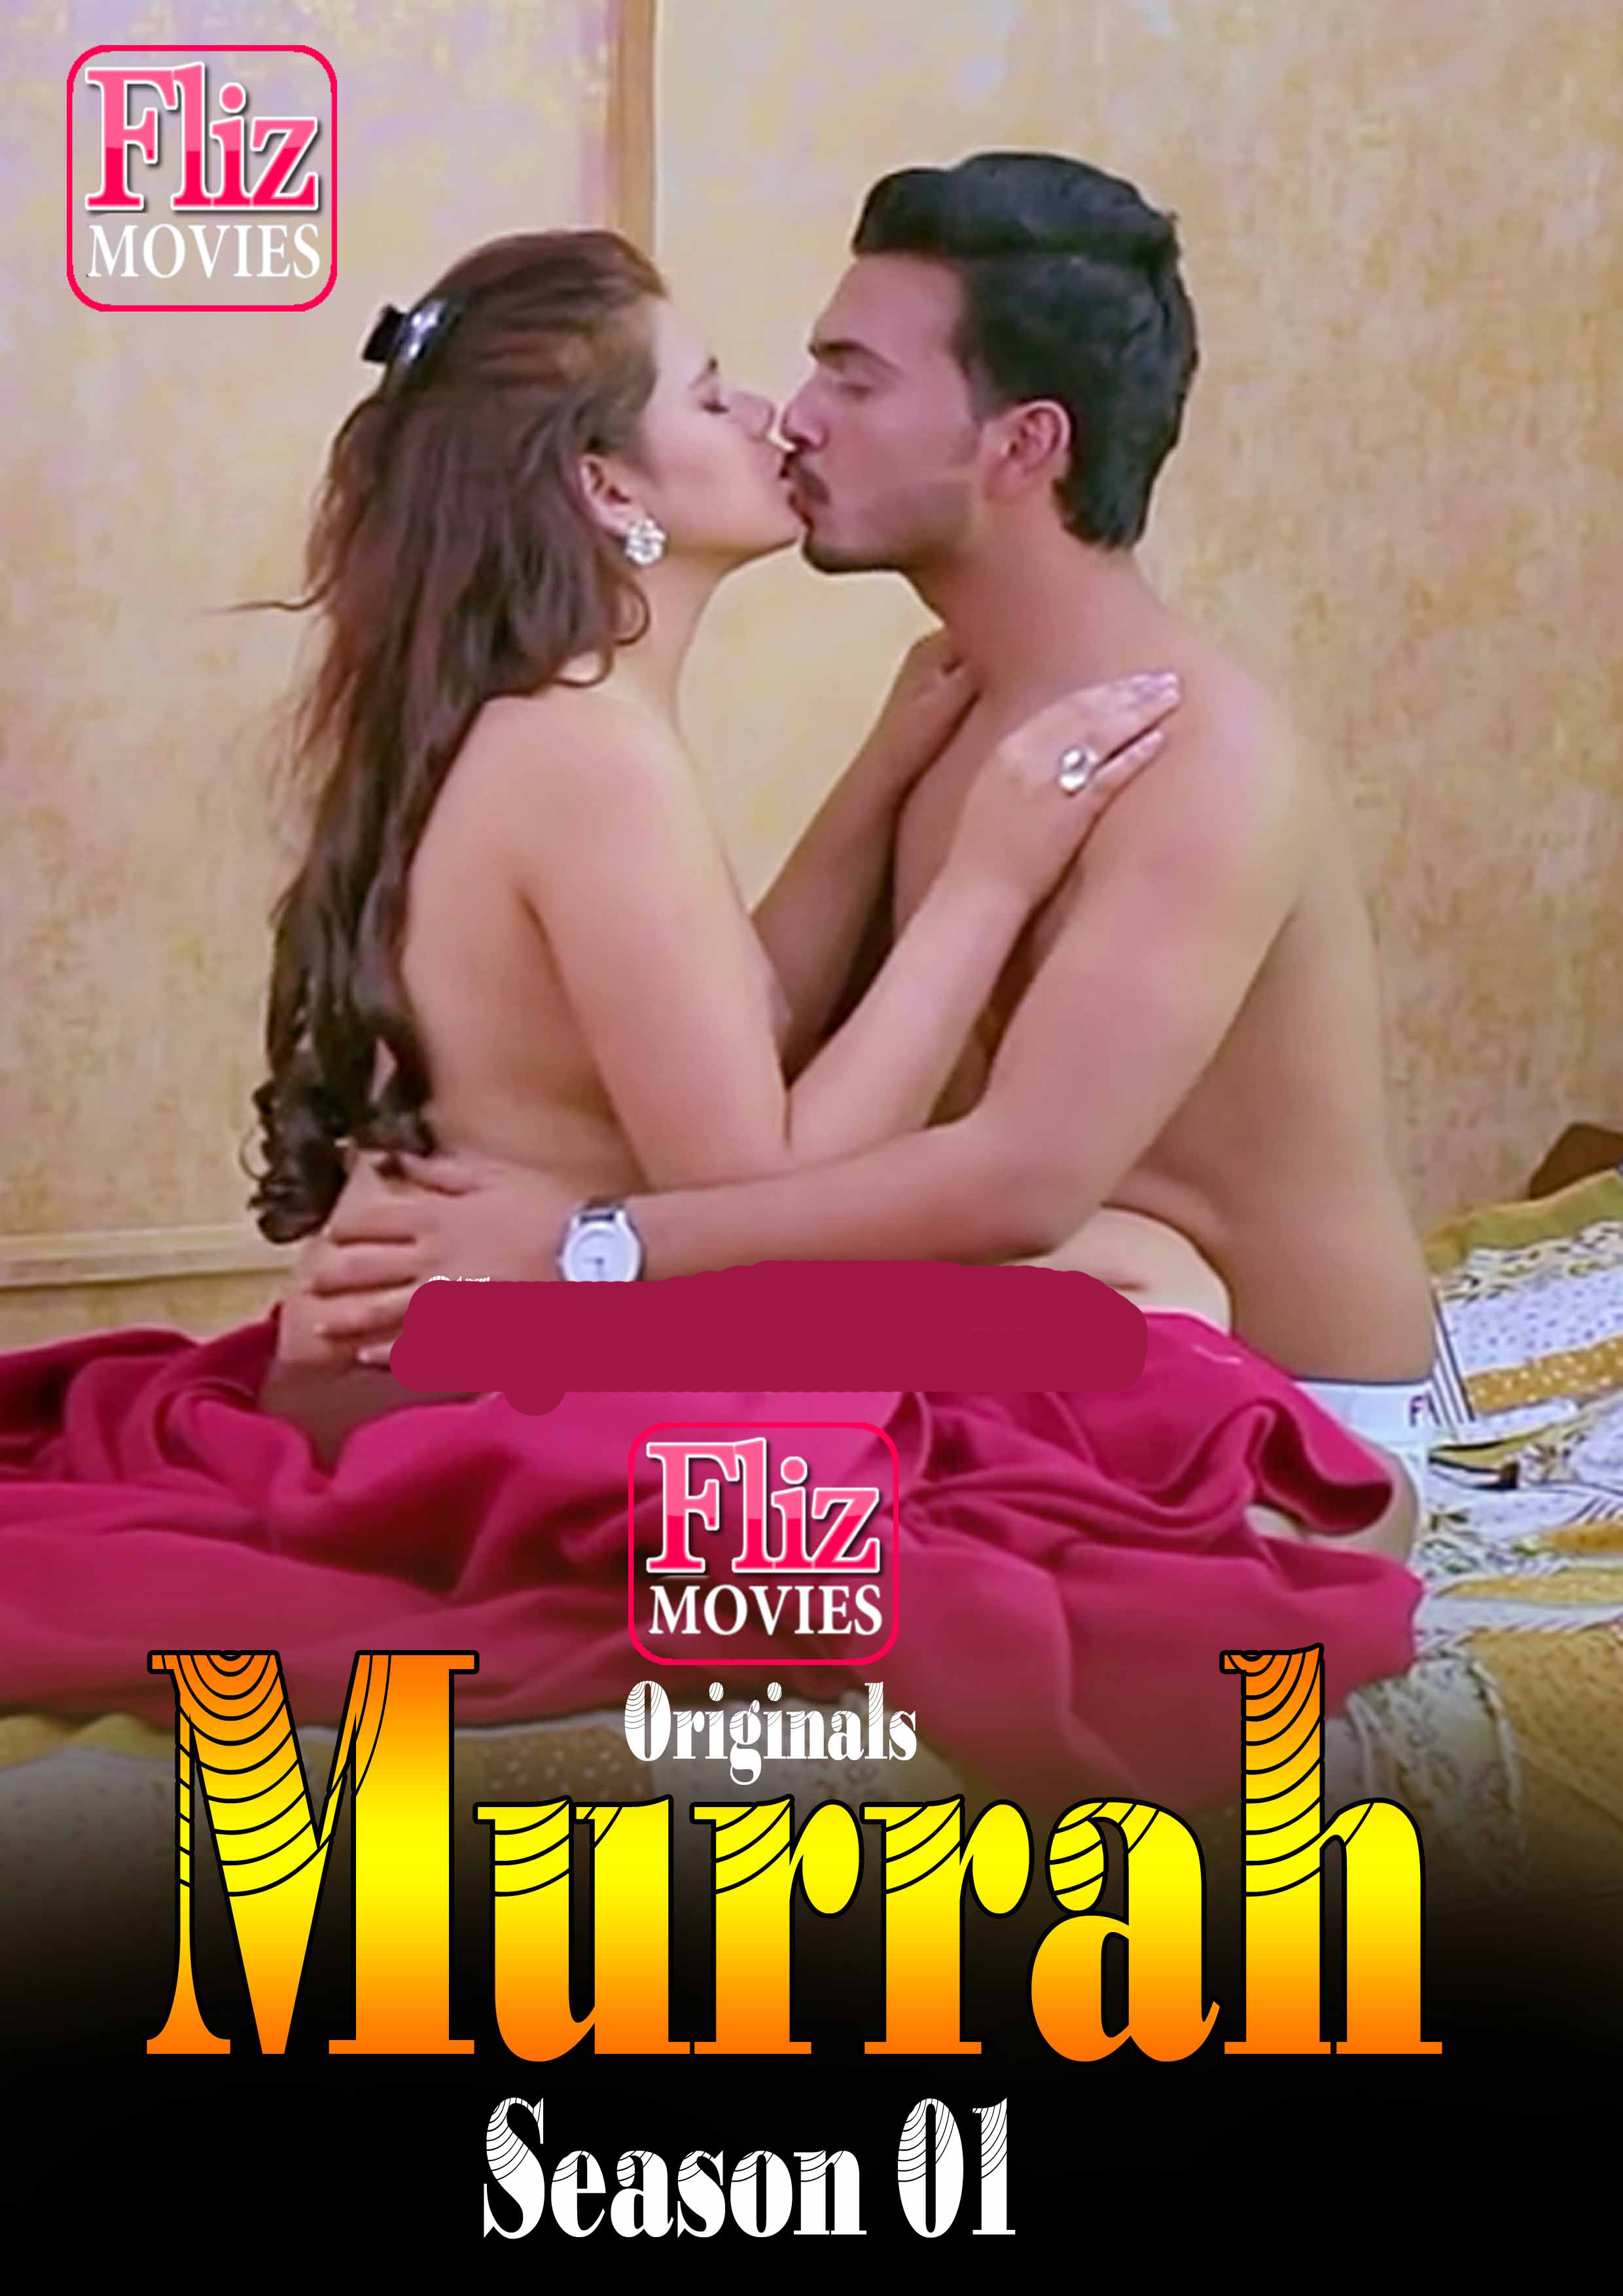 Murrah (2020) Hindi S01E01 Flizmovies Web Series 720p HDRip 200MB Download